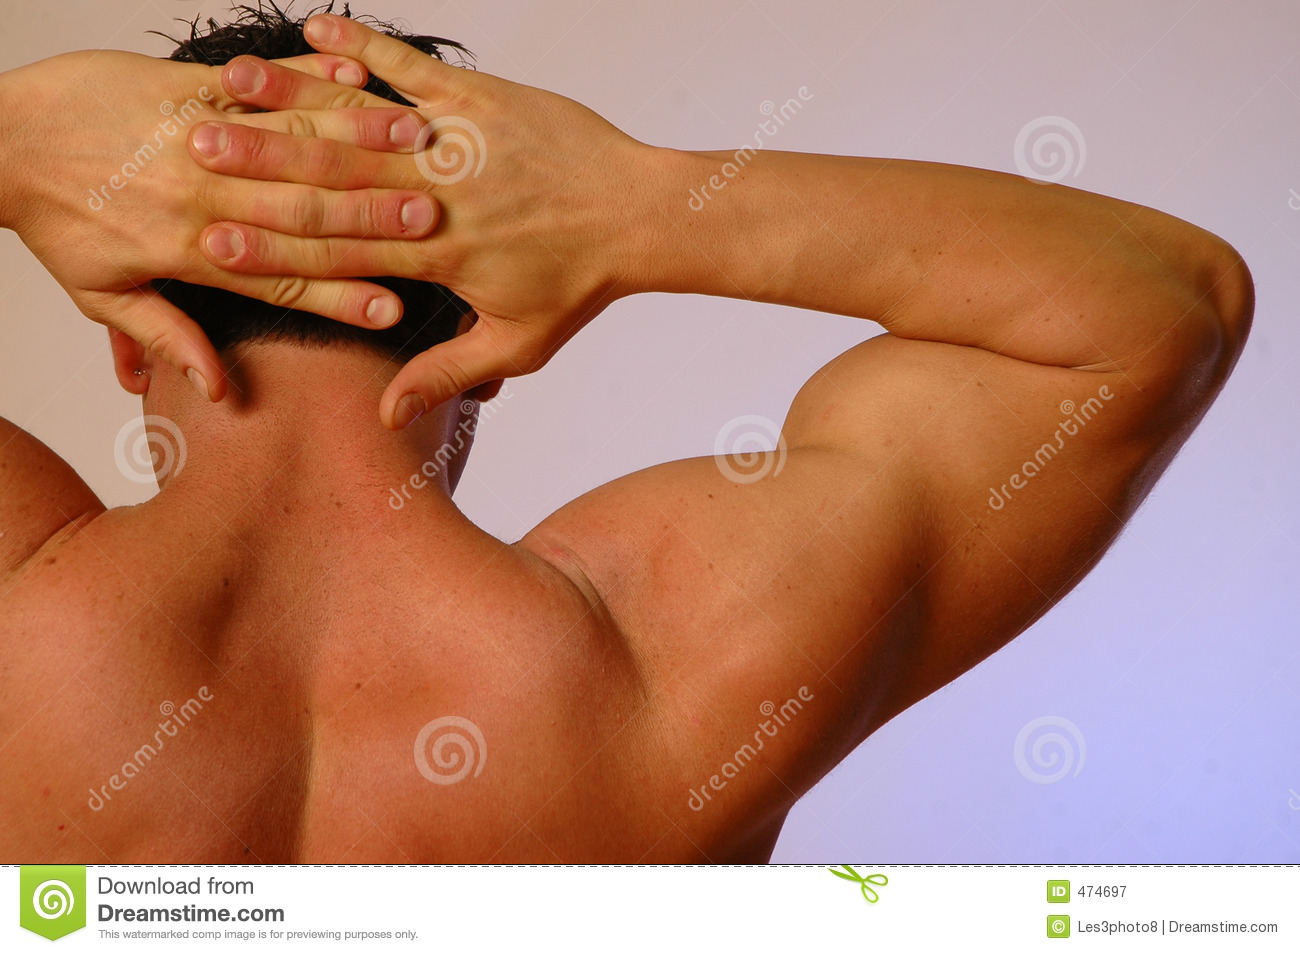 Male hands behind head